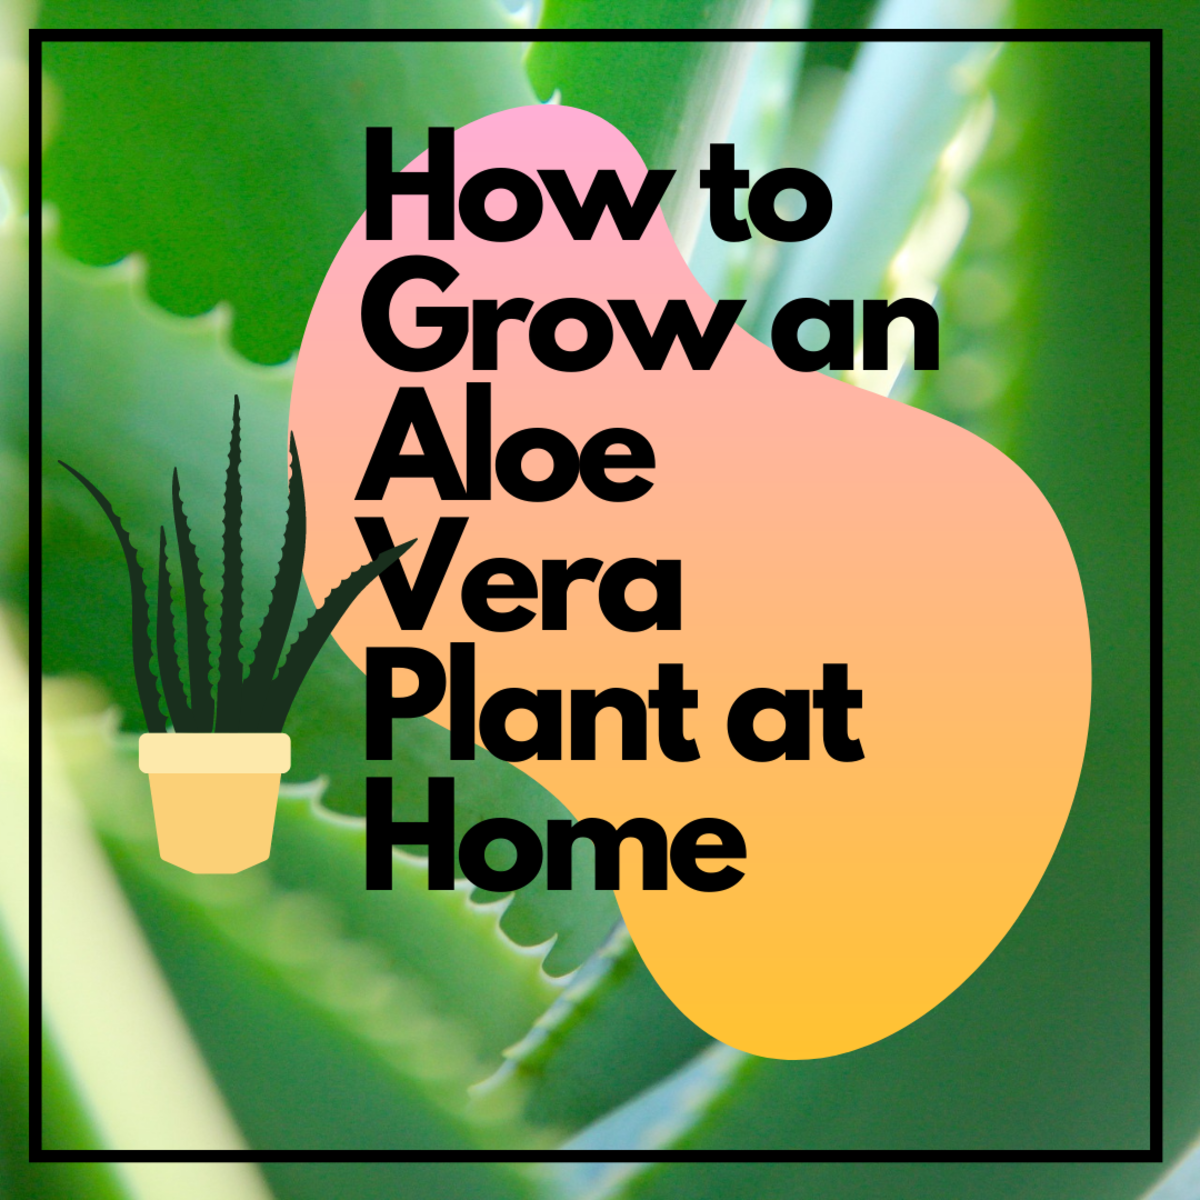 Aloe vera plants have medicinal properties and are great to have on hand at home.